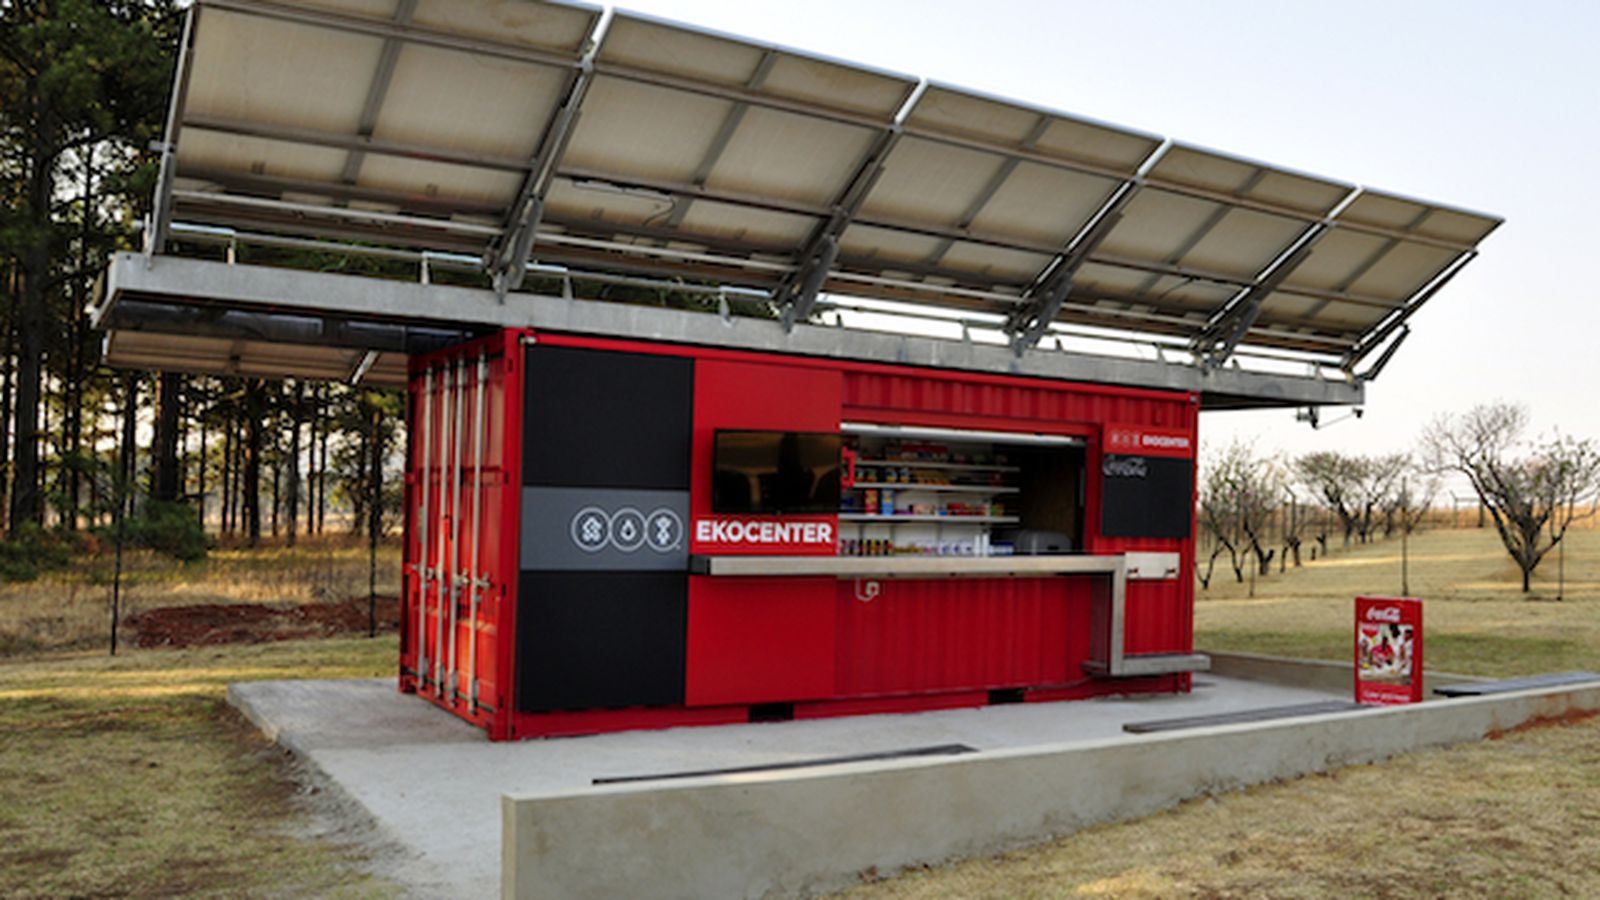 Coke Launches Its Own Shops To Deliver Food Water And Wi